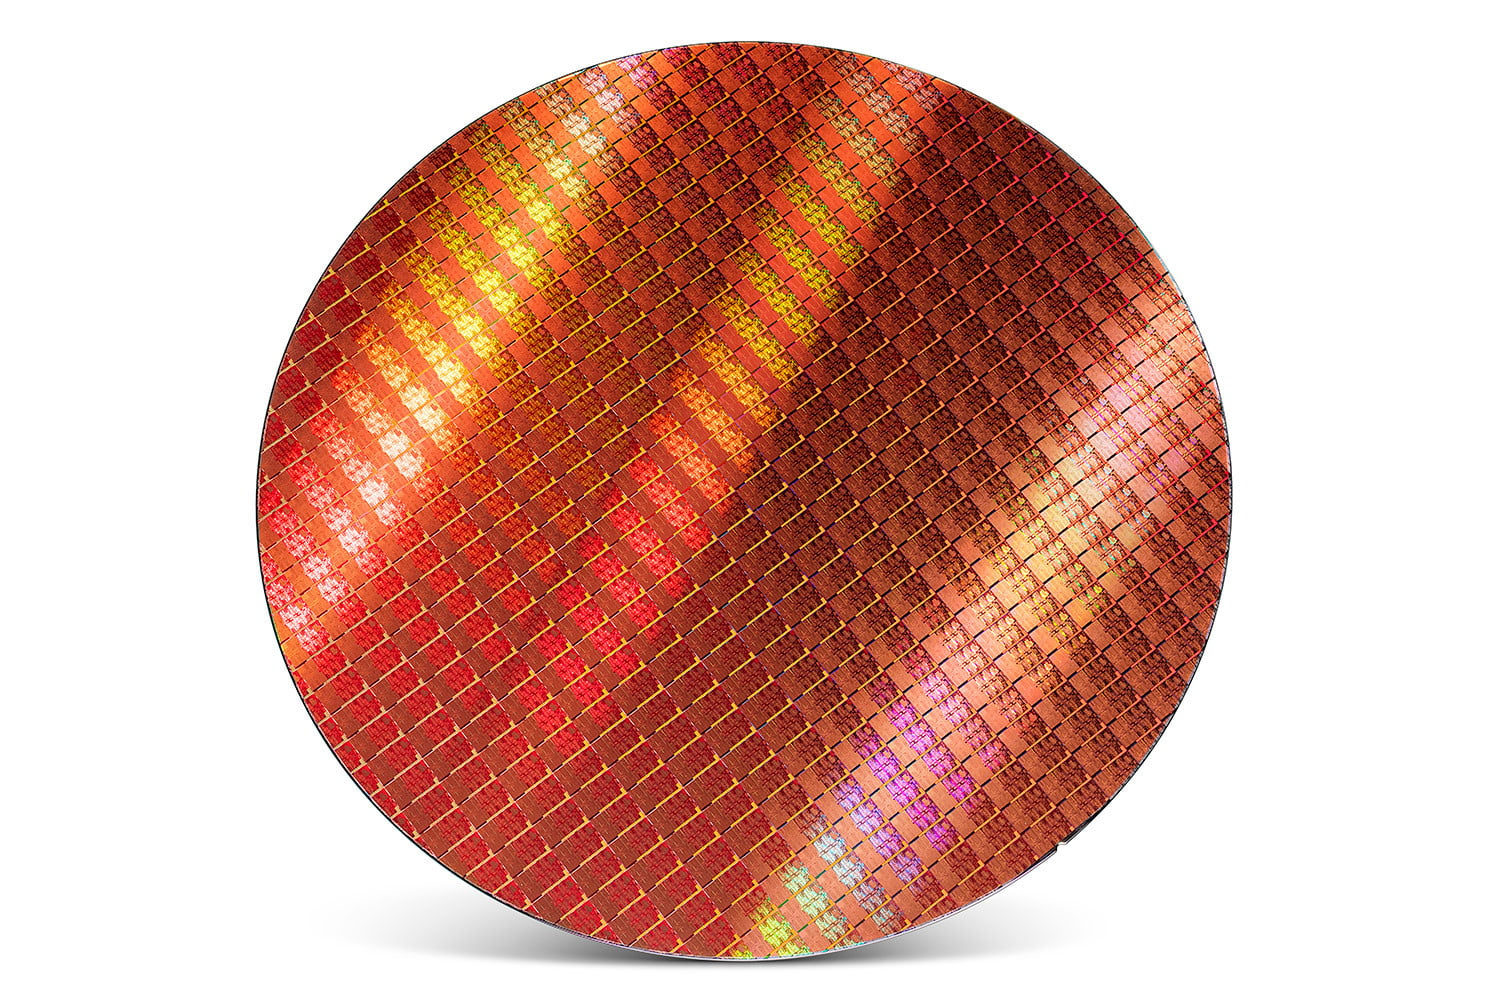 7th generation intel core ces 2017 frontal wafer a 04 8000pixels